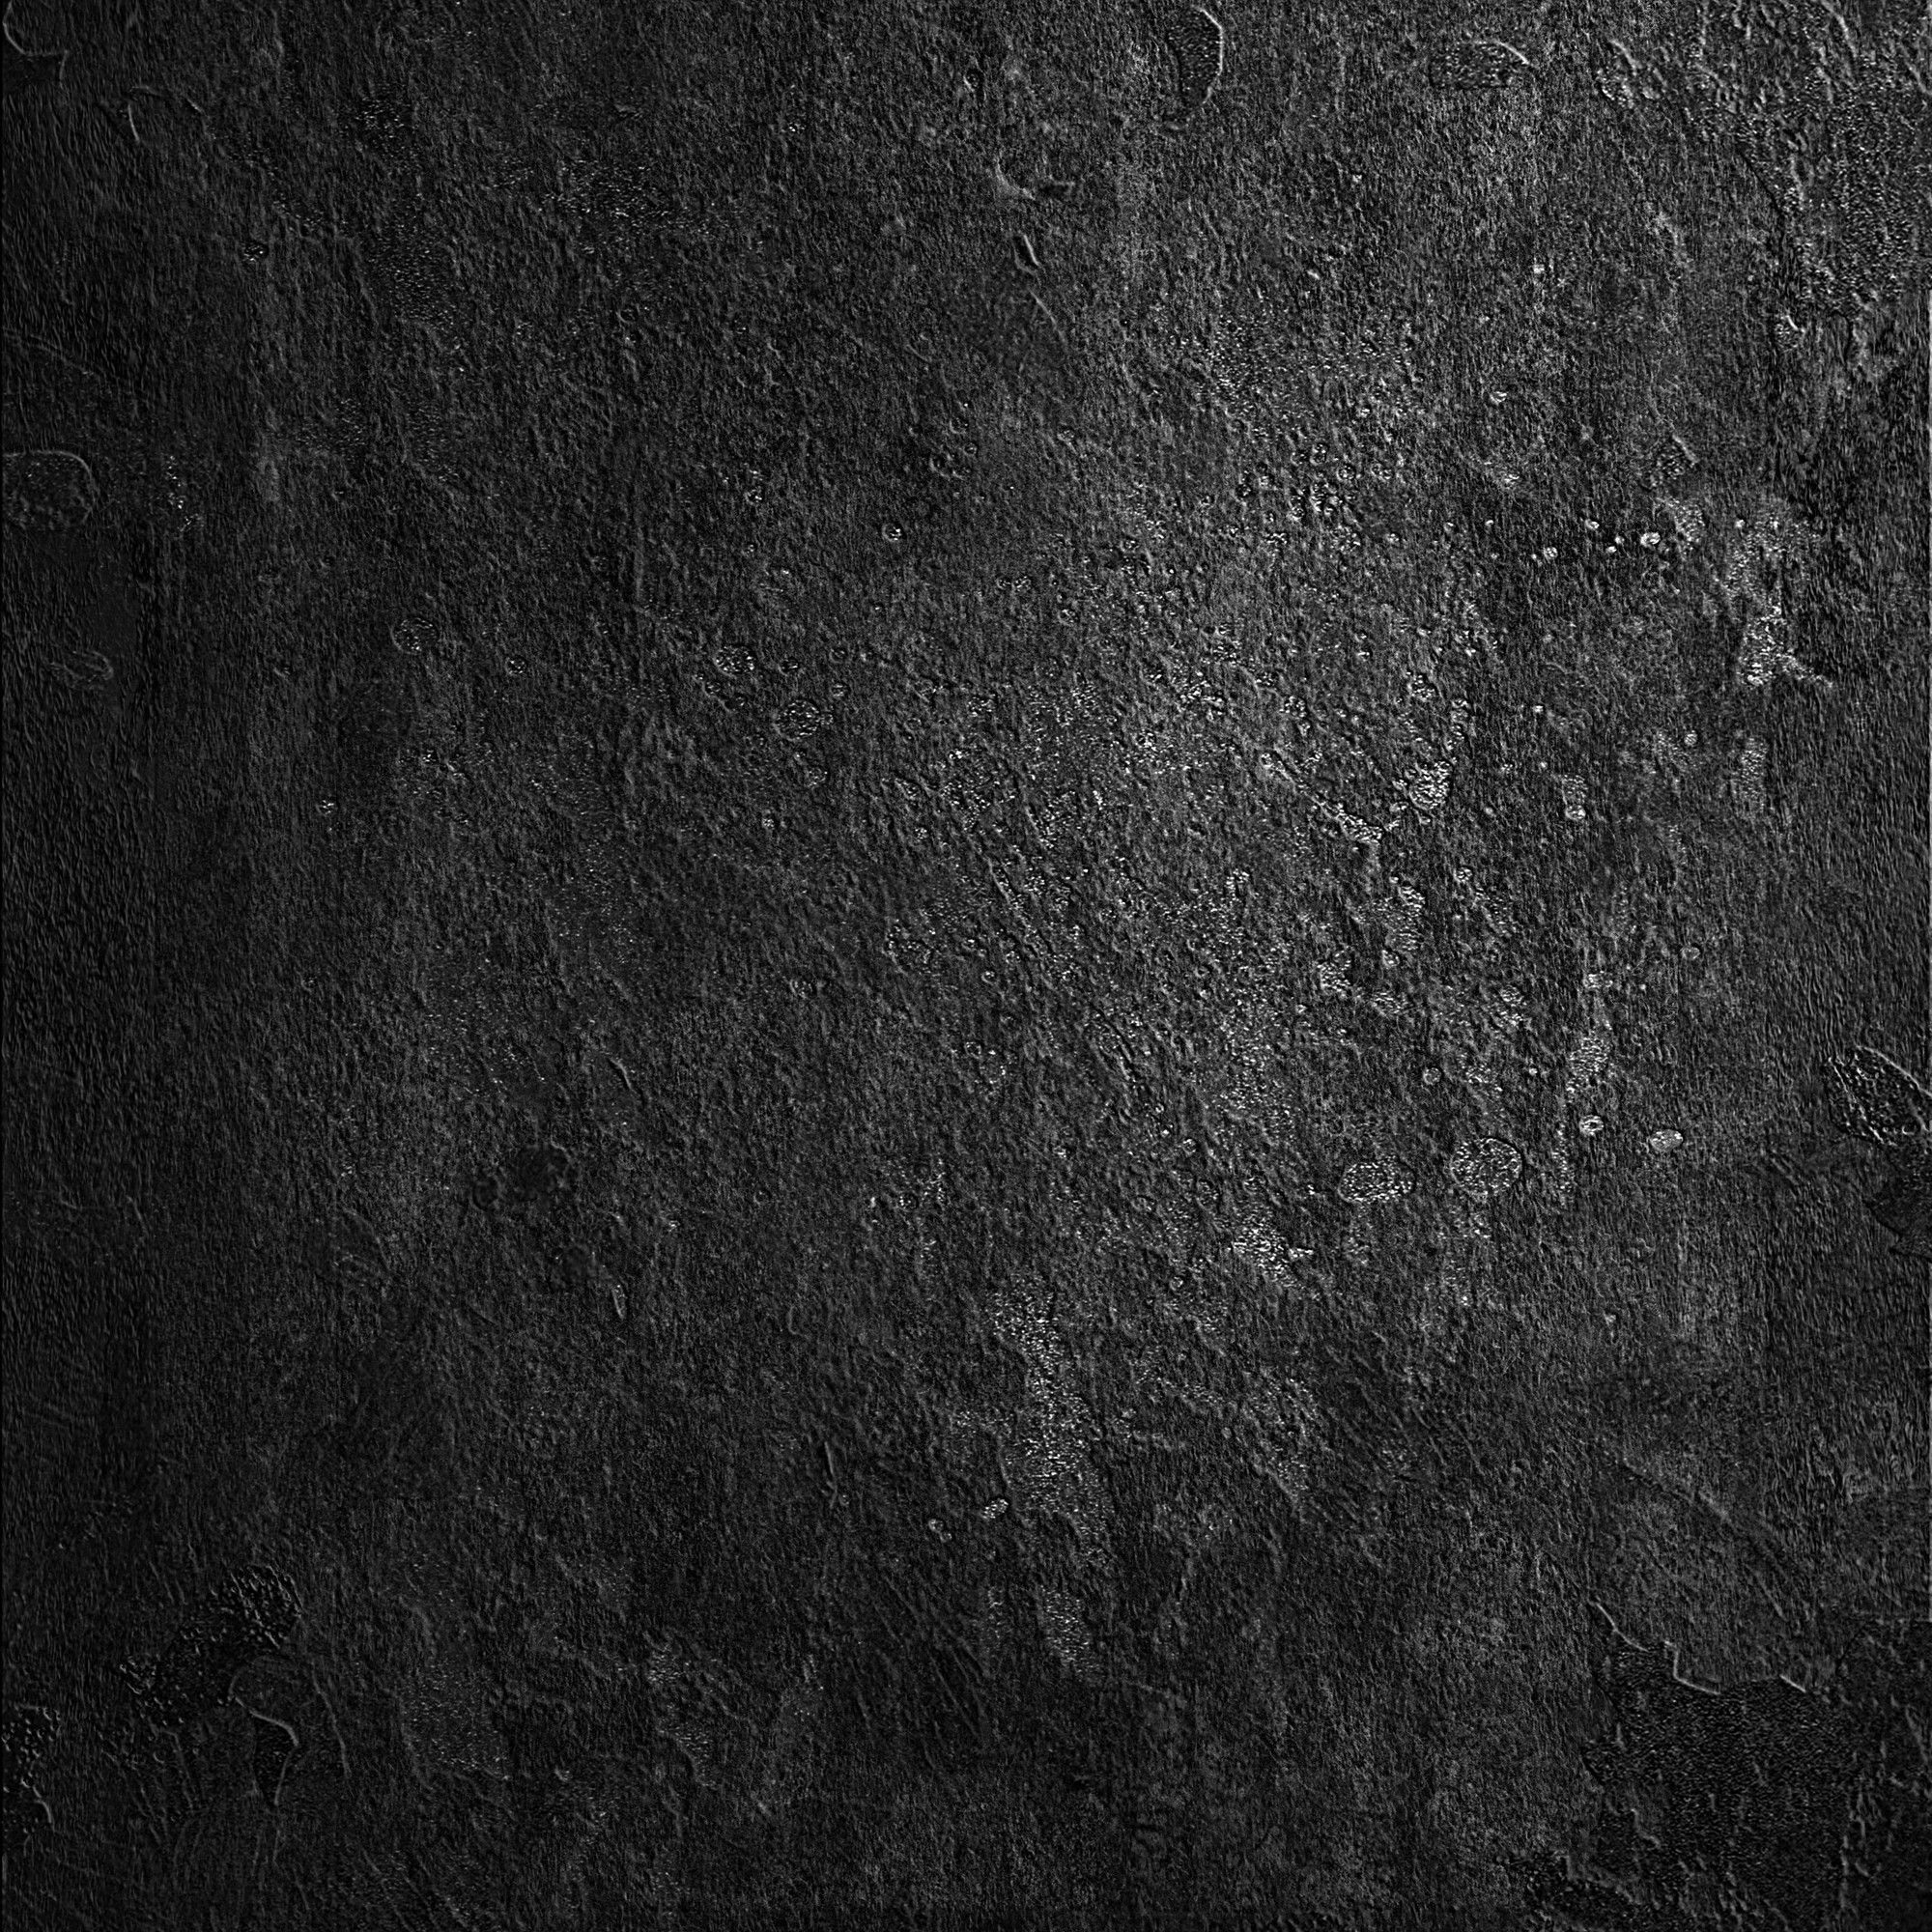 Black Metal Texture Design Inspiration 23904 Floor Design